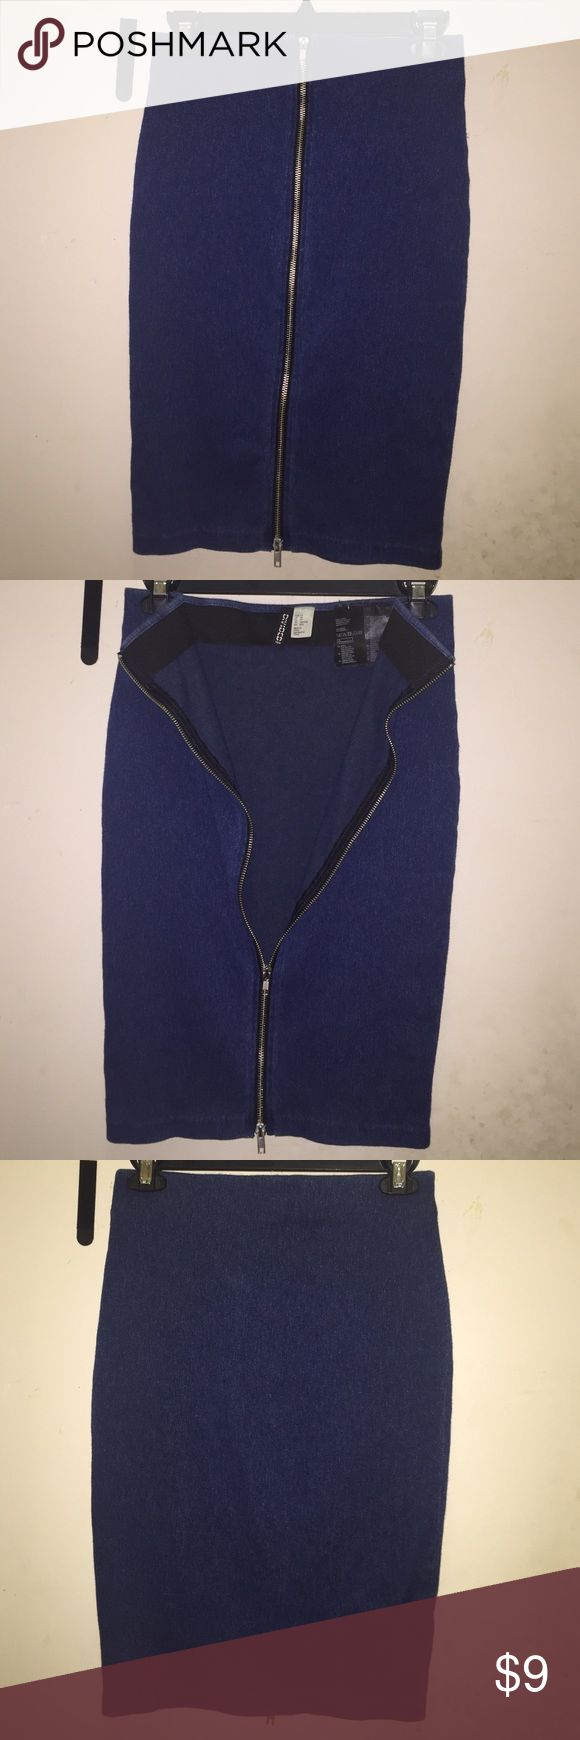 H&M stretch denim zip up midi skirt H&M stretch denim zip up midi skirt. Never worn. Zips from top to bottom. Has two zippers. Size extra small but lots of stretch so it can fit up to a size medium lady. Great buy wear to work or on a date. H&M Skirts Pencil